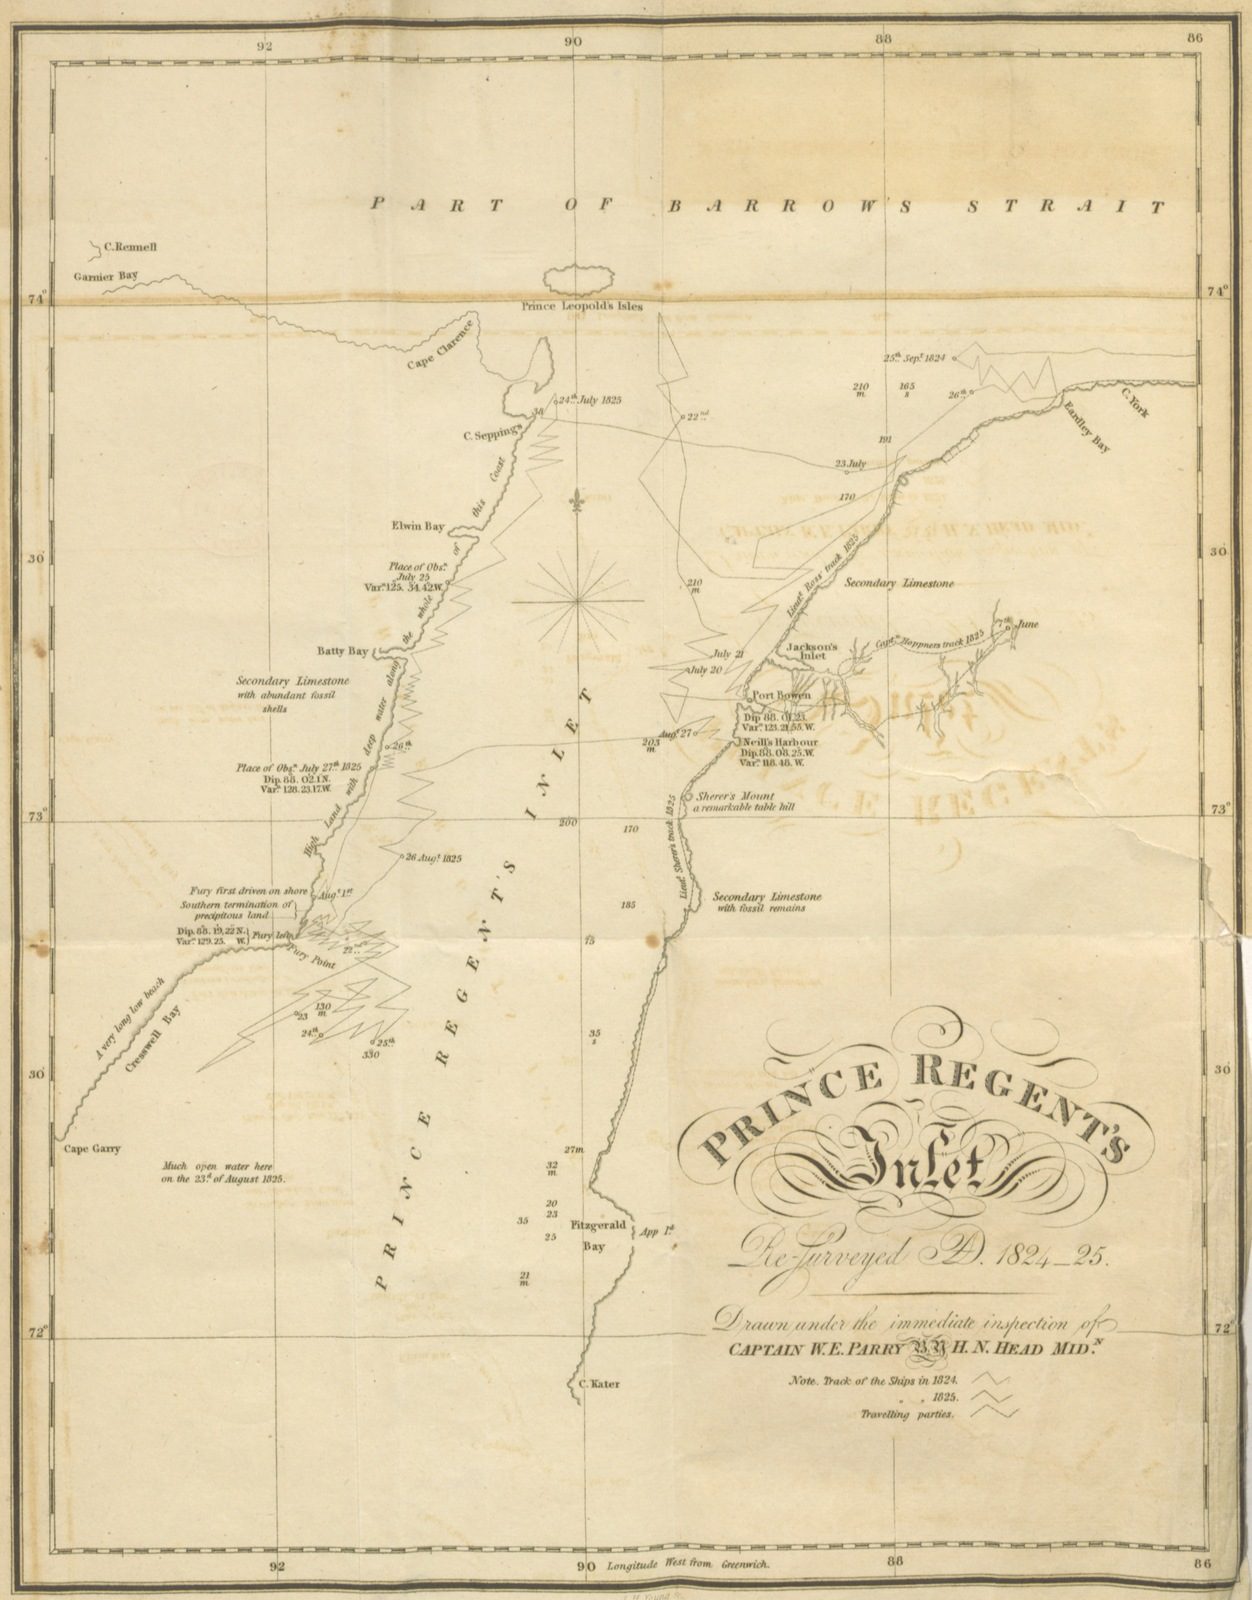 """map from """"[Journal of a Third Voyage for the discovery of a North-West Passage from the Atlantic to the Pacific; performed in the years 1824, 25, in His Majesty's ships Hecla and Fury, under the orders of ... W. E. P. ... Illustrated by plates and charts. (Appendix. Zoology ... By Lieut. J. C. Ross. Botanical Appendix by Professor Hooker. Notes on ... Geology ... By Professor Jameson.)]"""""""